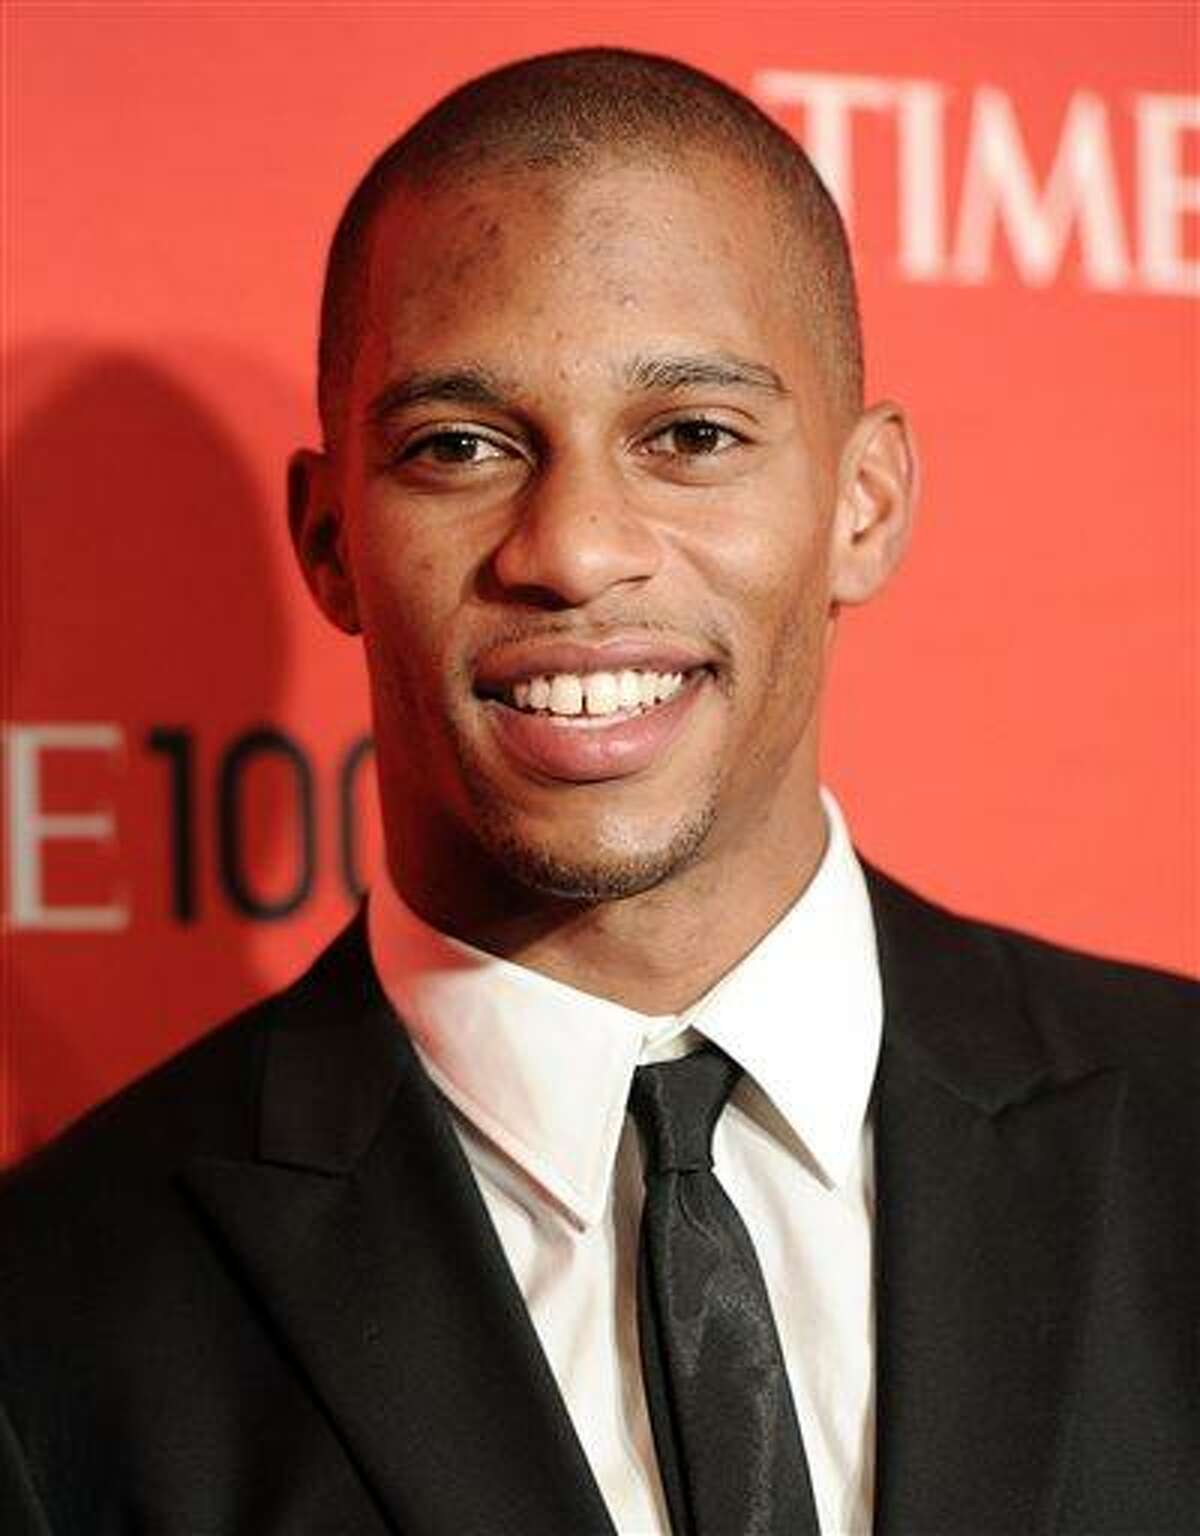 File-This April 24, 2012 file photo shows New York Giants football player Victor Cruz attending the TIME 100 gala, celebrating the 100 most influential people in the world, at the Frederick P. Rose Hall in New York. Cruz has signed a five-year contract extension that runs through the 2018 season. The deal with worth $43 million according to media reports Monday July 8, 2013. Cruz was a restricted free agent with three years in the NFL. Last month, he signed a one-year, $2.879 million tender with the Giants, but a long-term deal was already in the works. The Giants could have matched any offers Cruz received from other teams, so he didn't get any. (AP Photo/Evan Agostini,File)